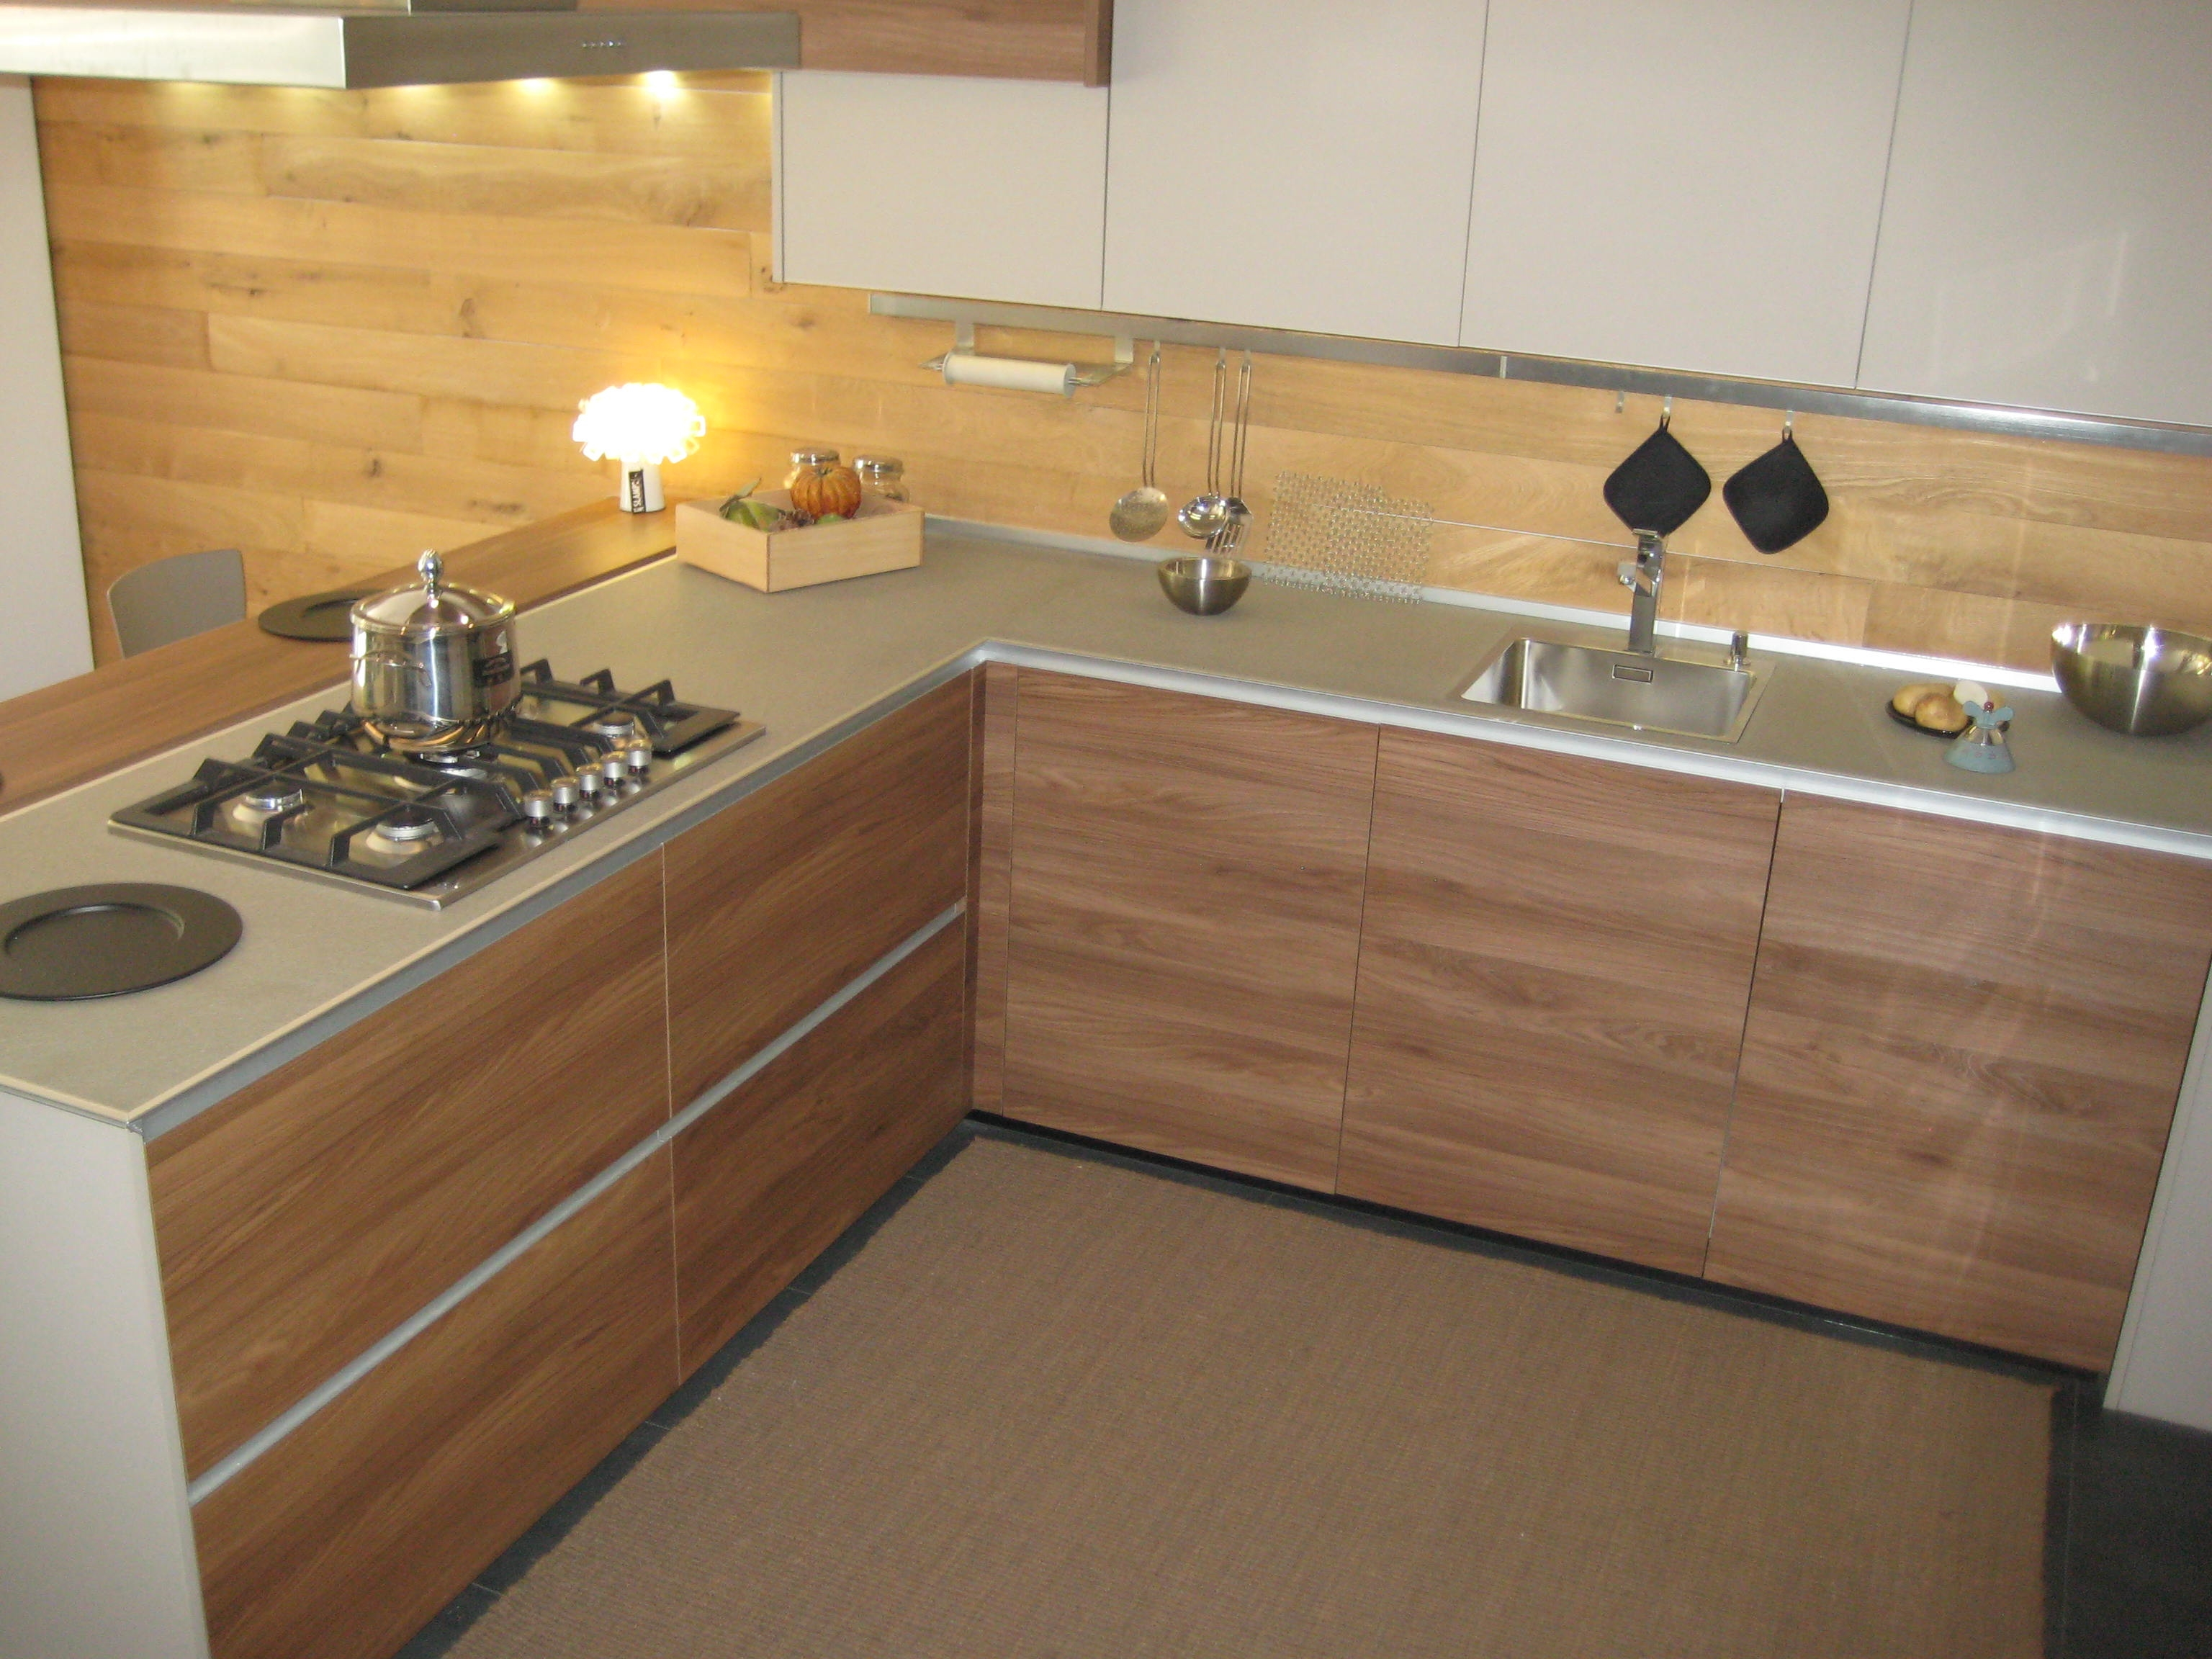 Awesome Cucine Scic Opinioni Gallery - Skilifts.us - skilifts.us